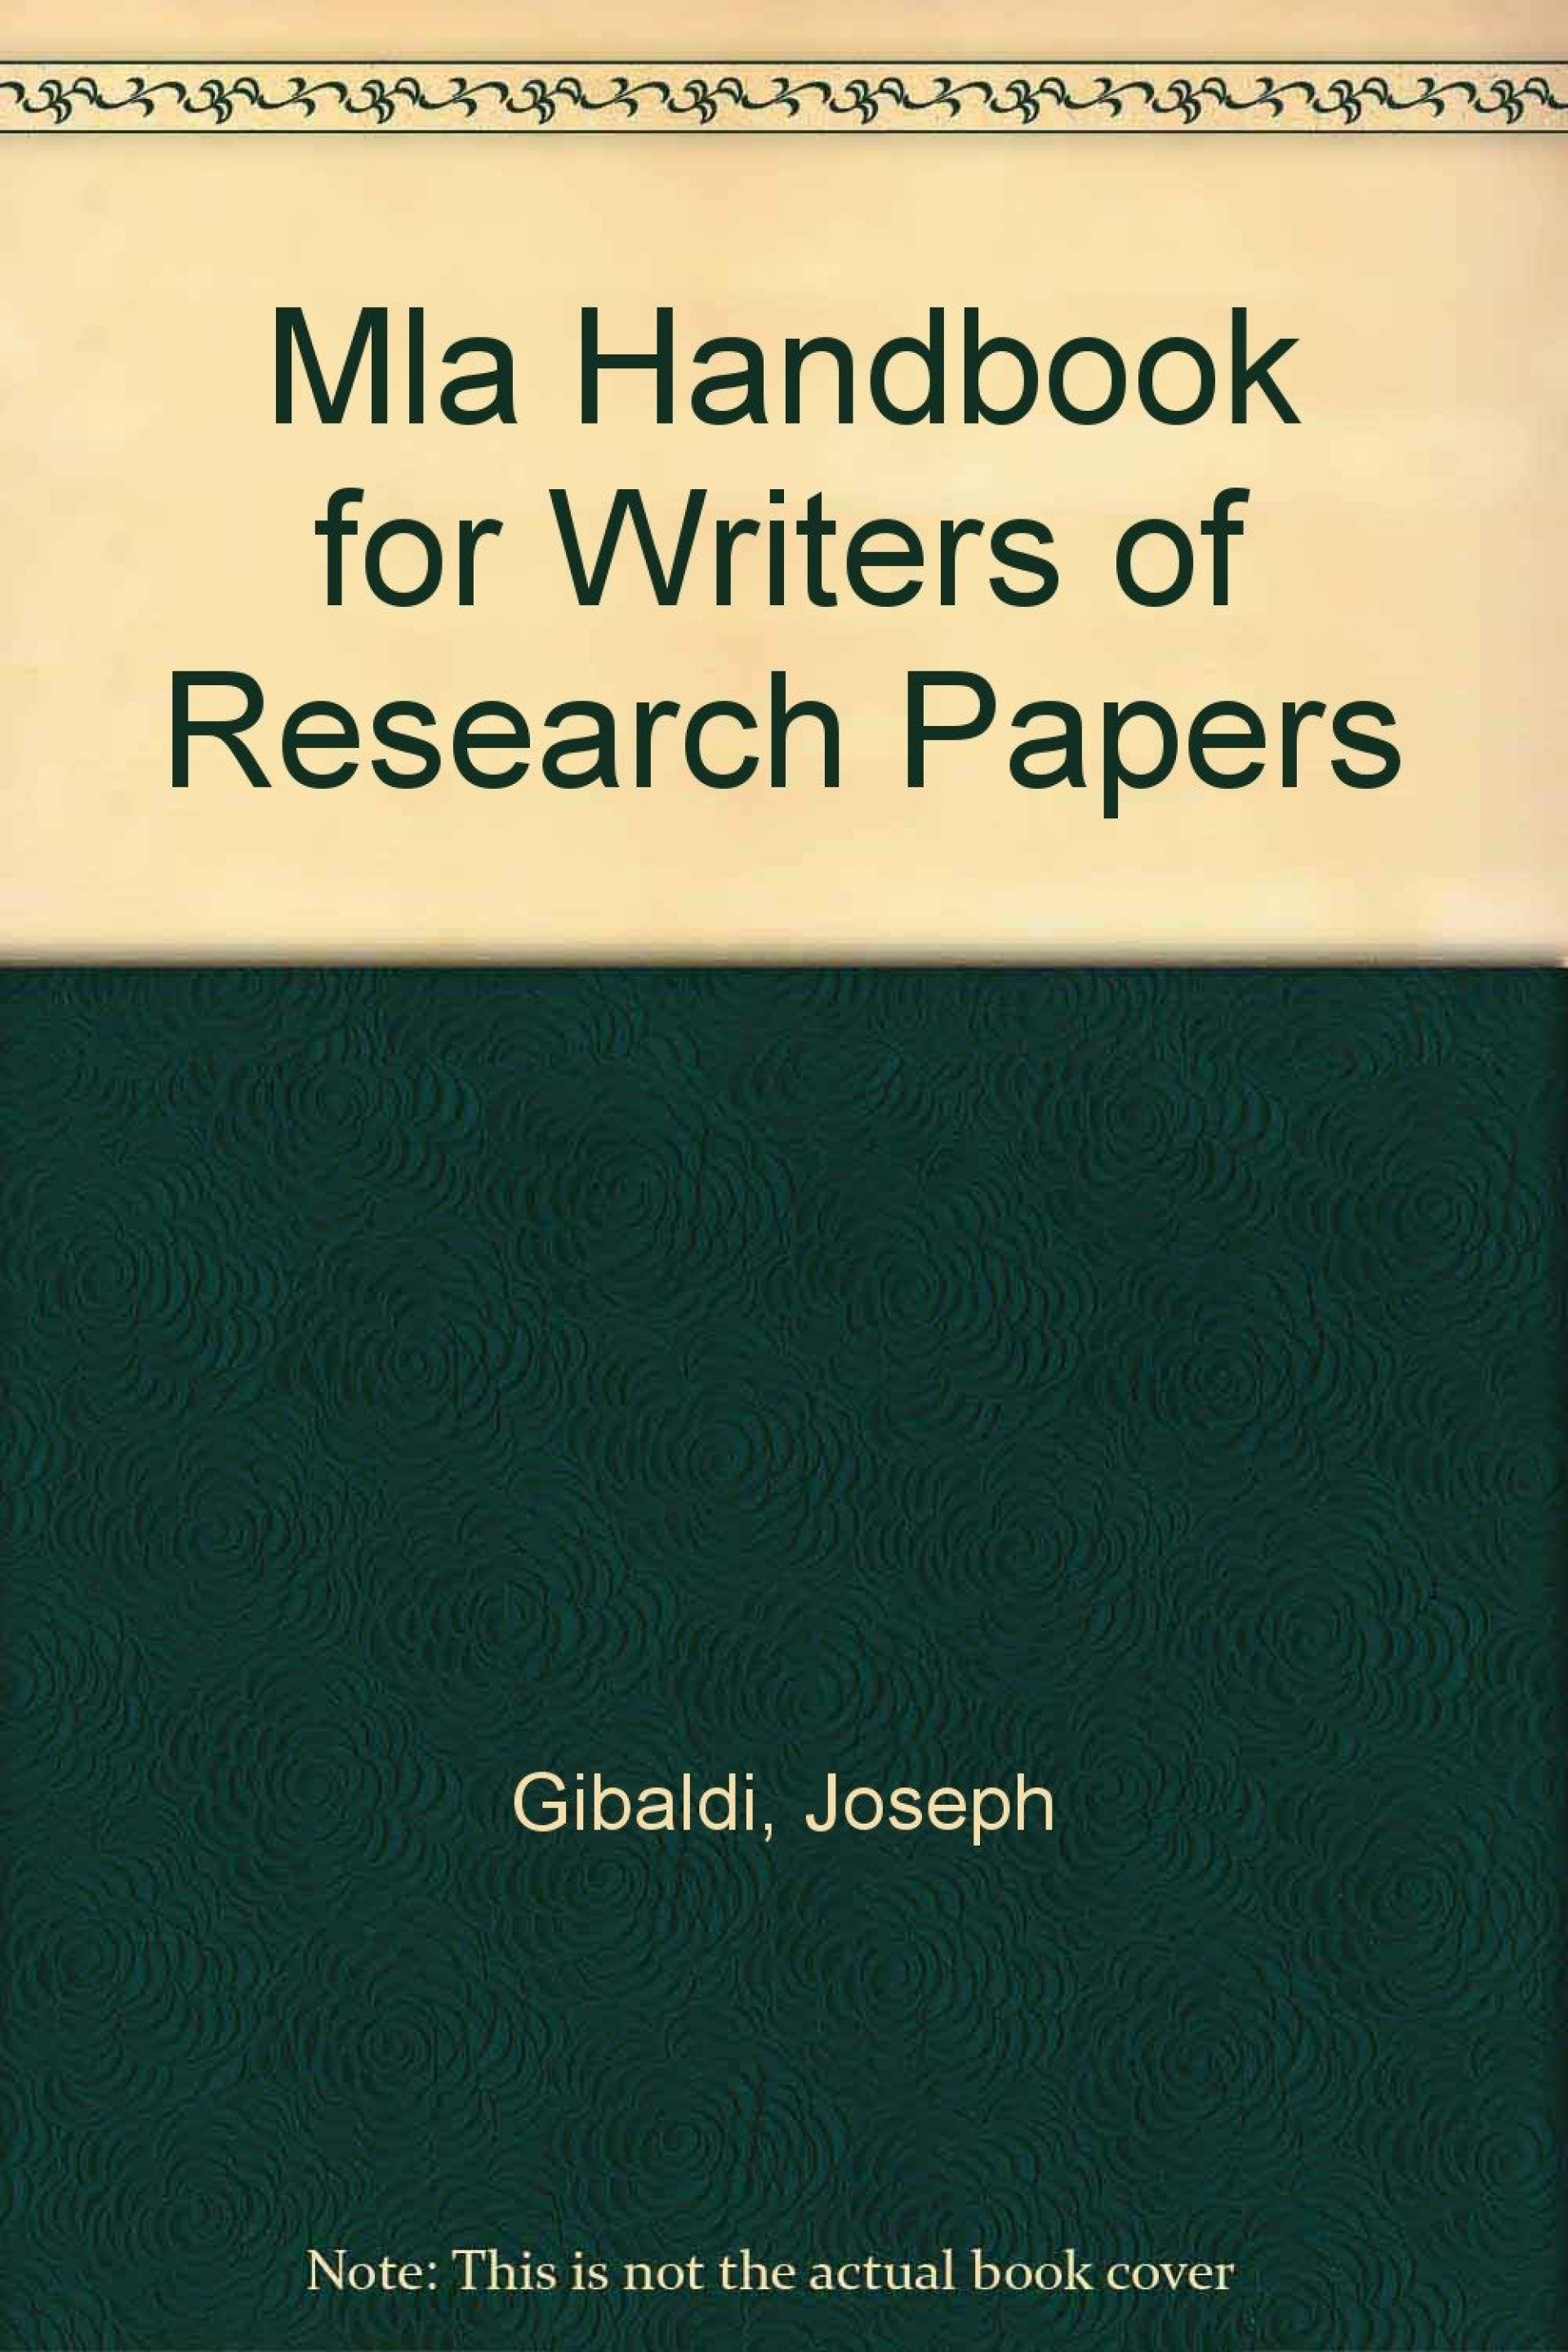 009 Mla Handbook For Writers Of Research Papers 8th Edition Paper Unique Pdf Free Download 1920